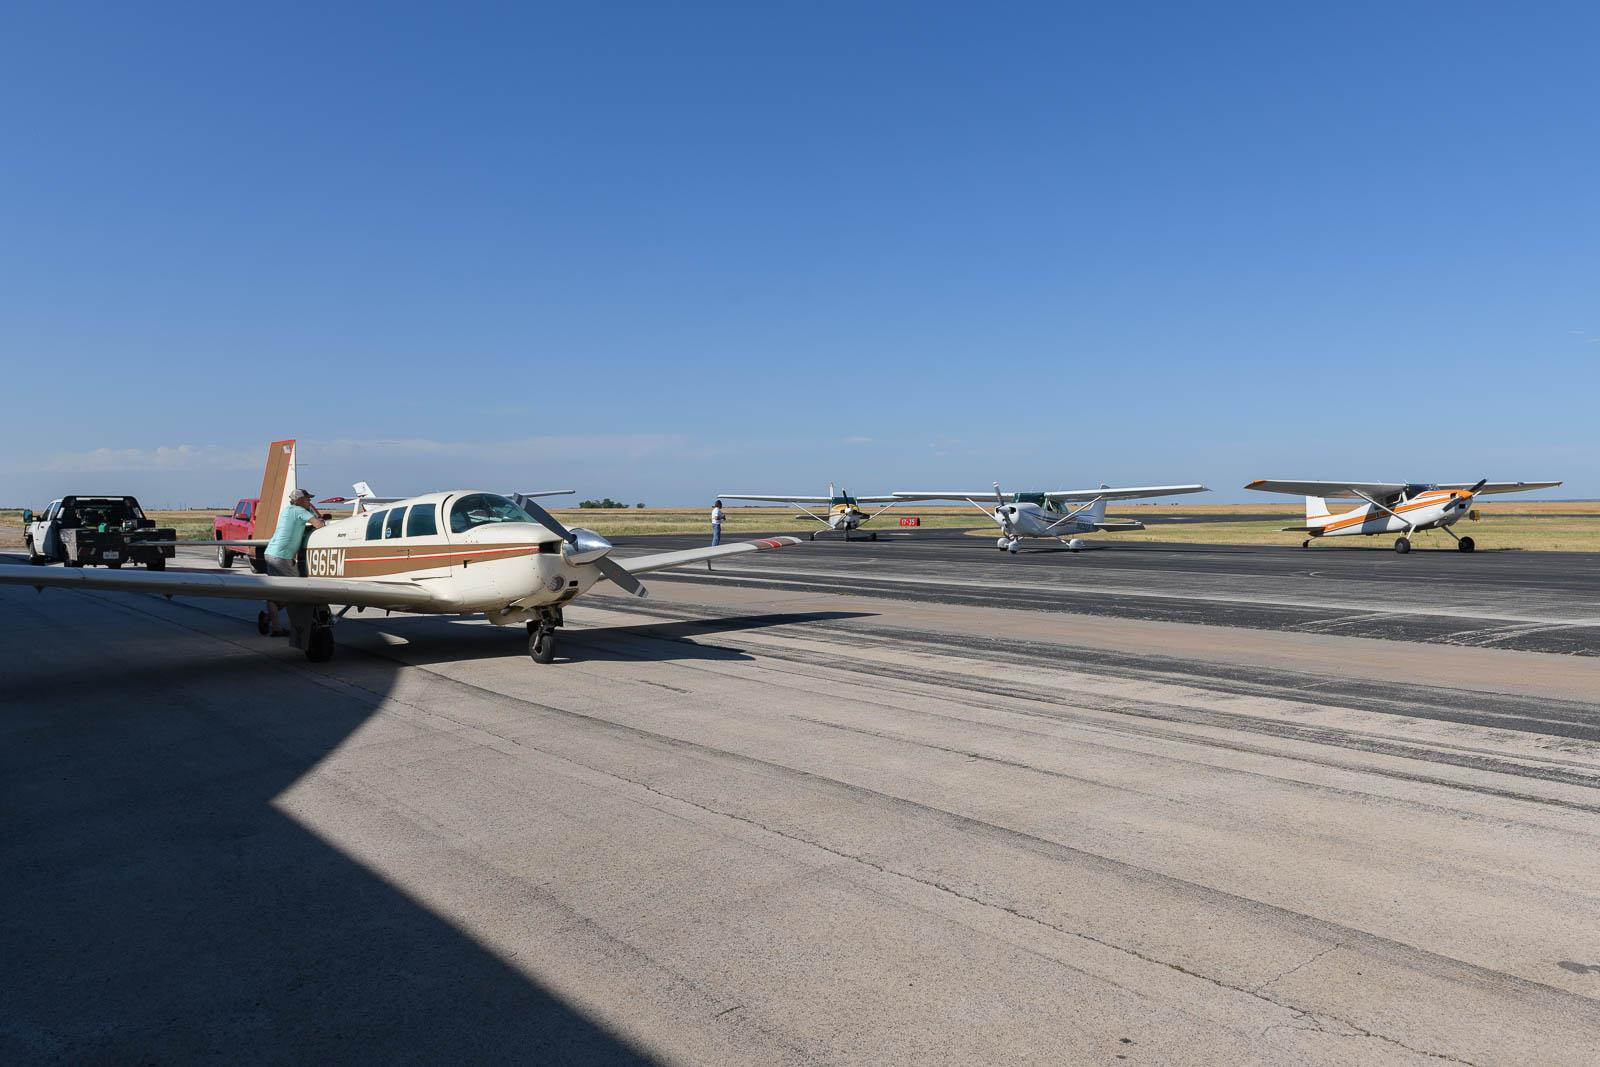 Surprising activity at Stamford Airport